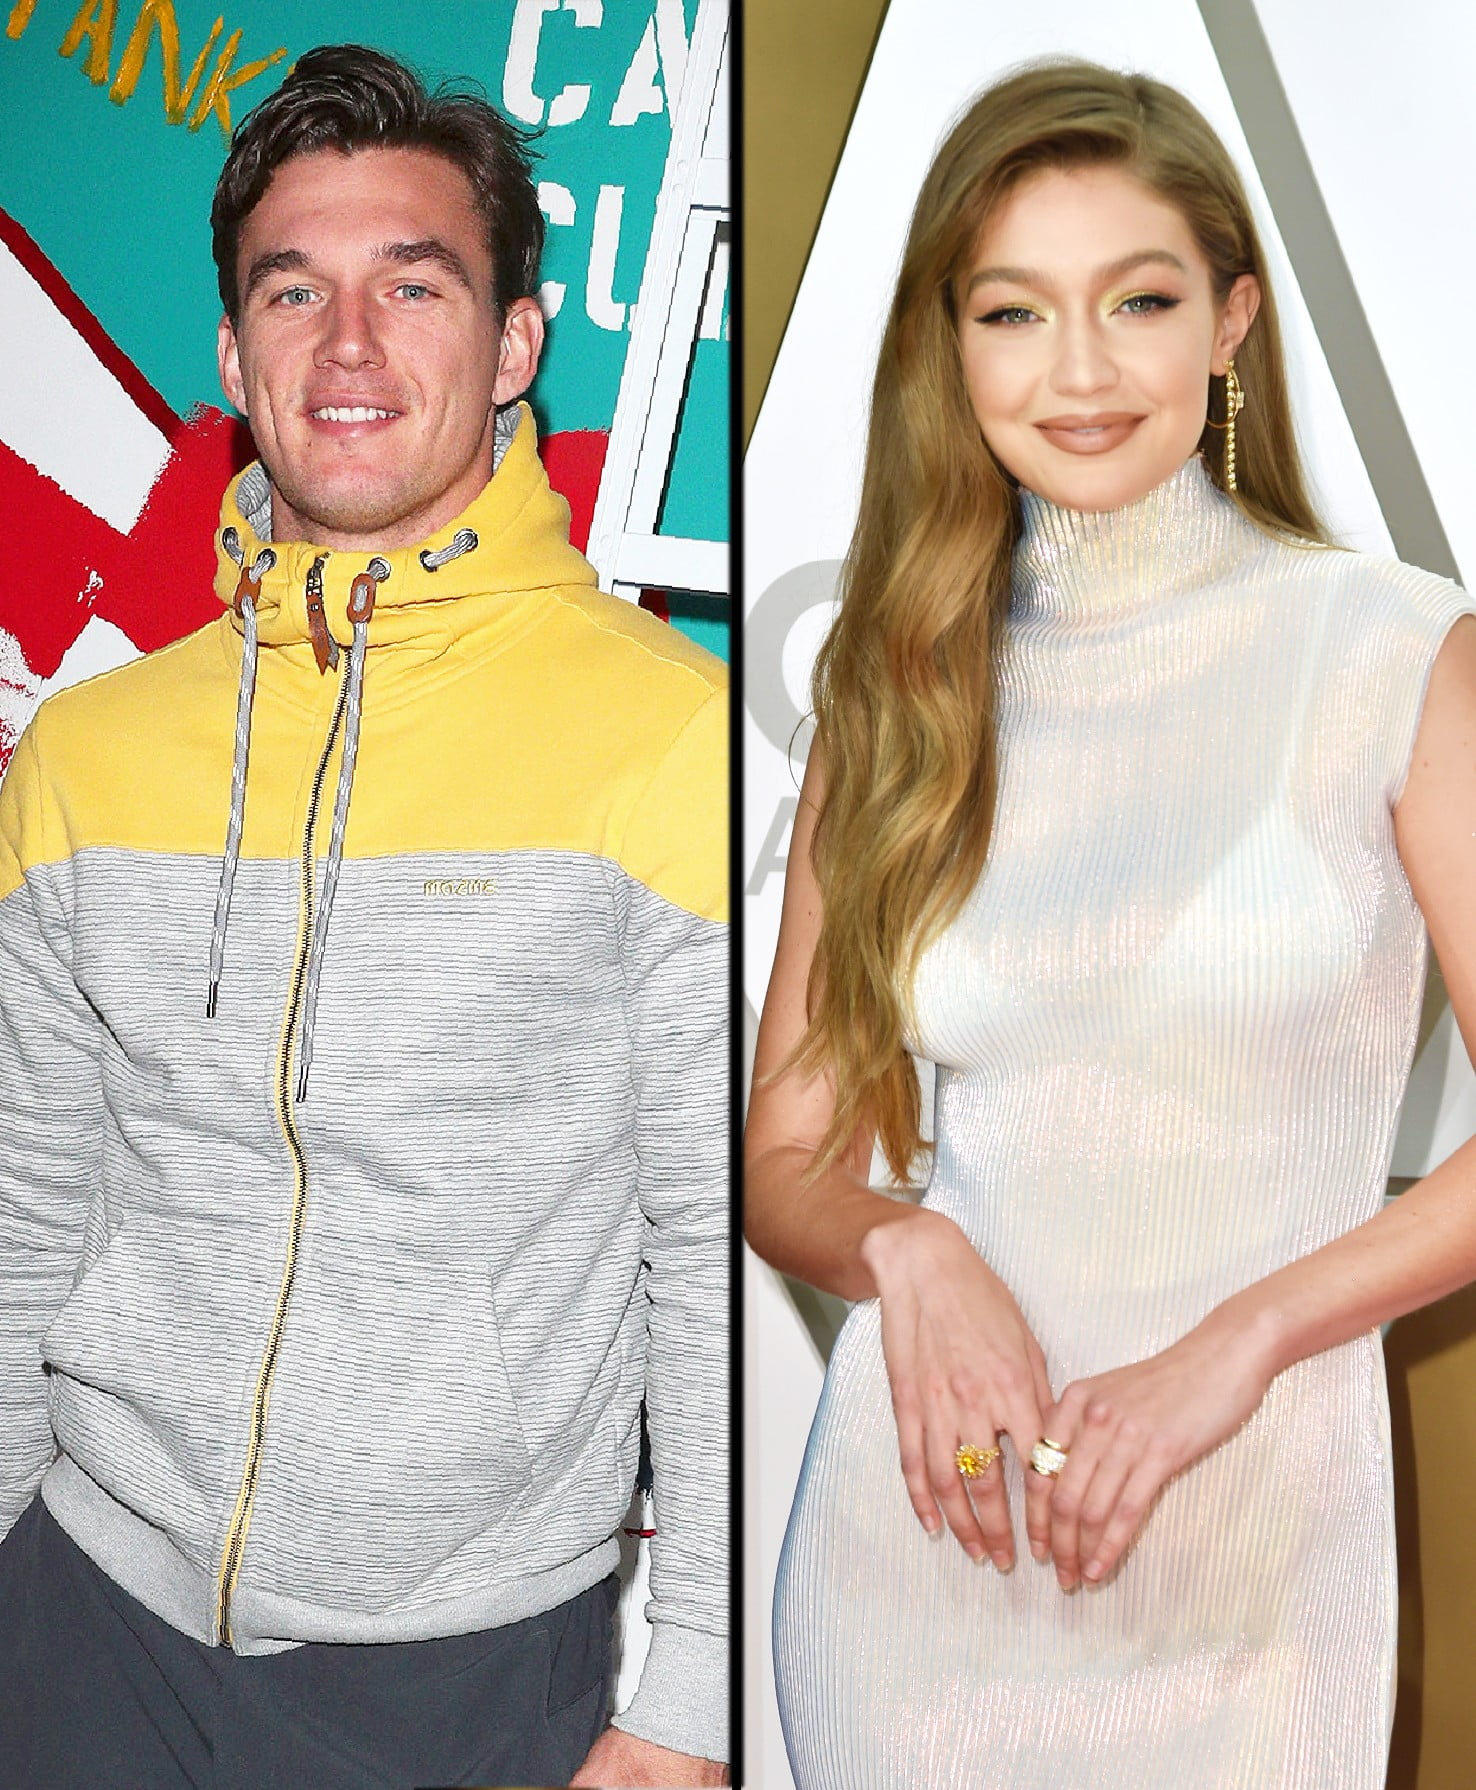 Tyler Cameron Says Pregnant Ex Gigi Hadid Will 'Be an Incredible Mother'